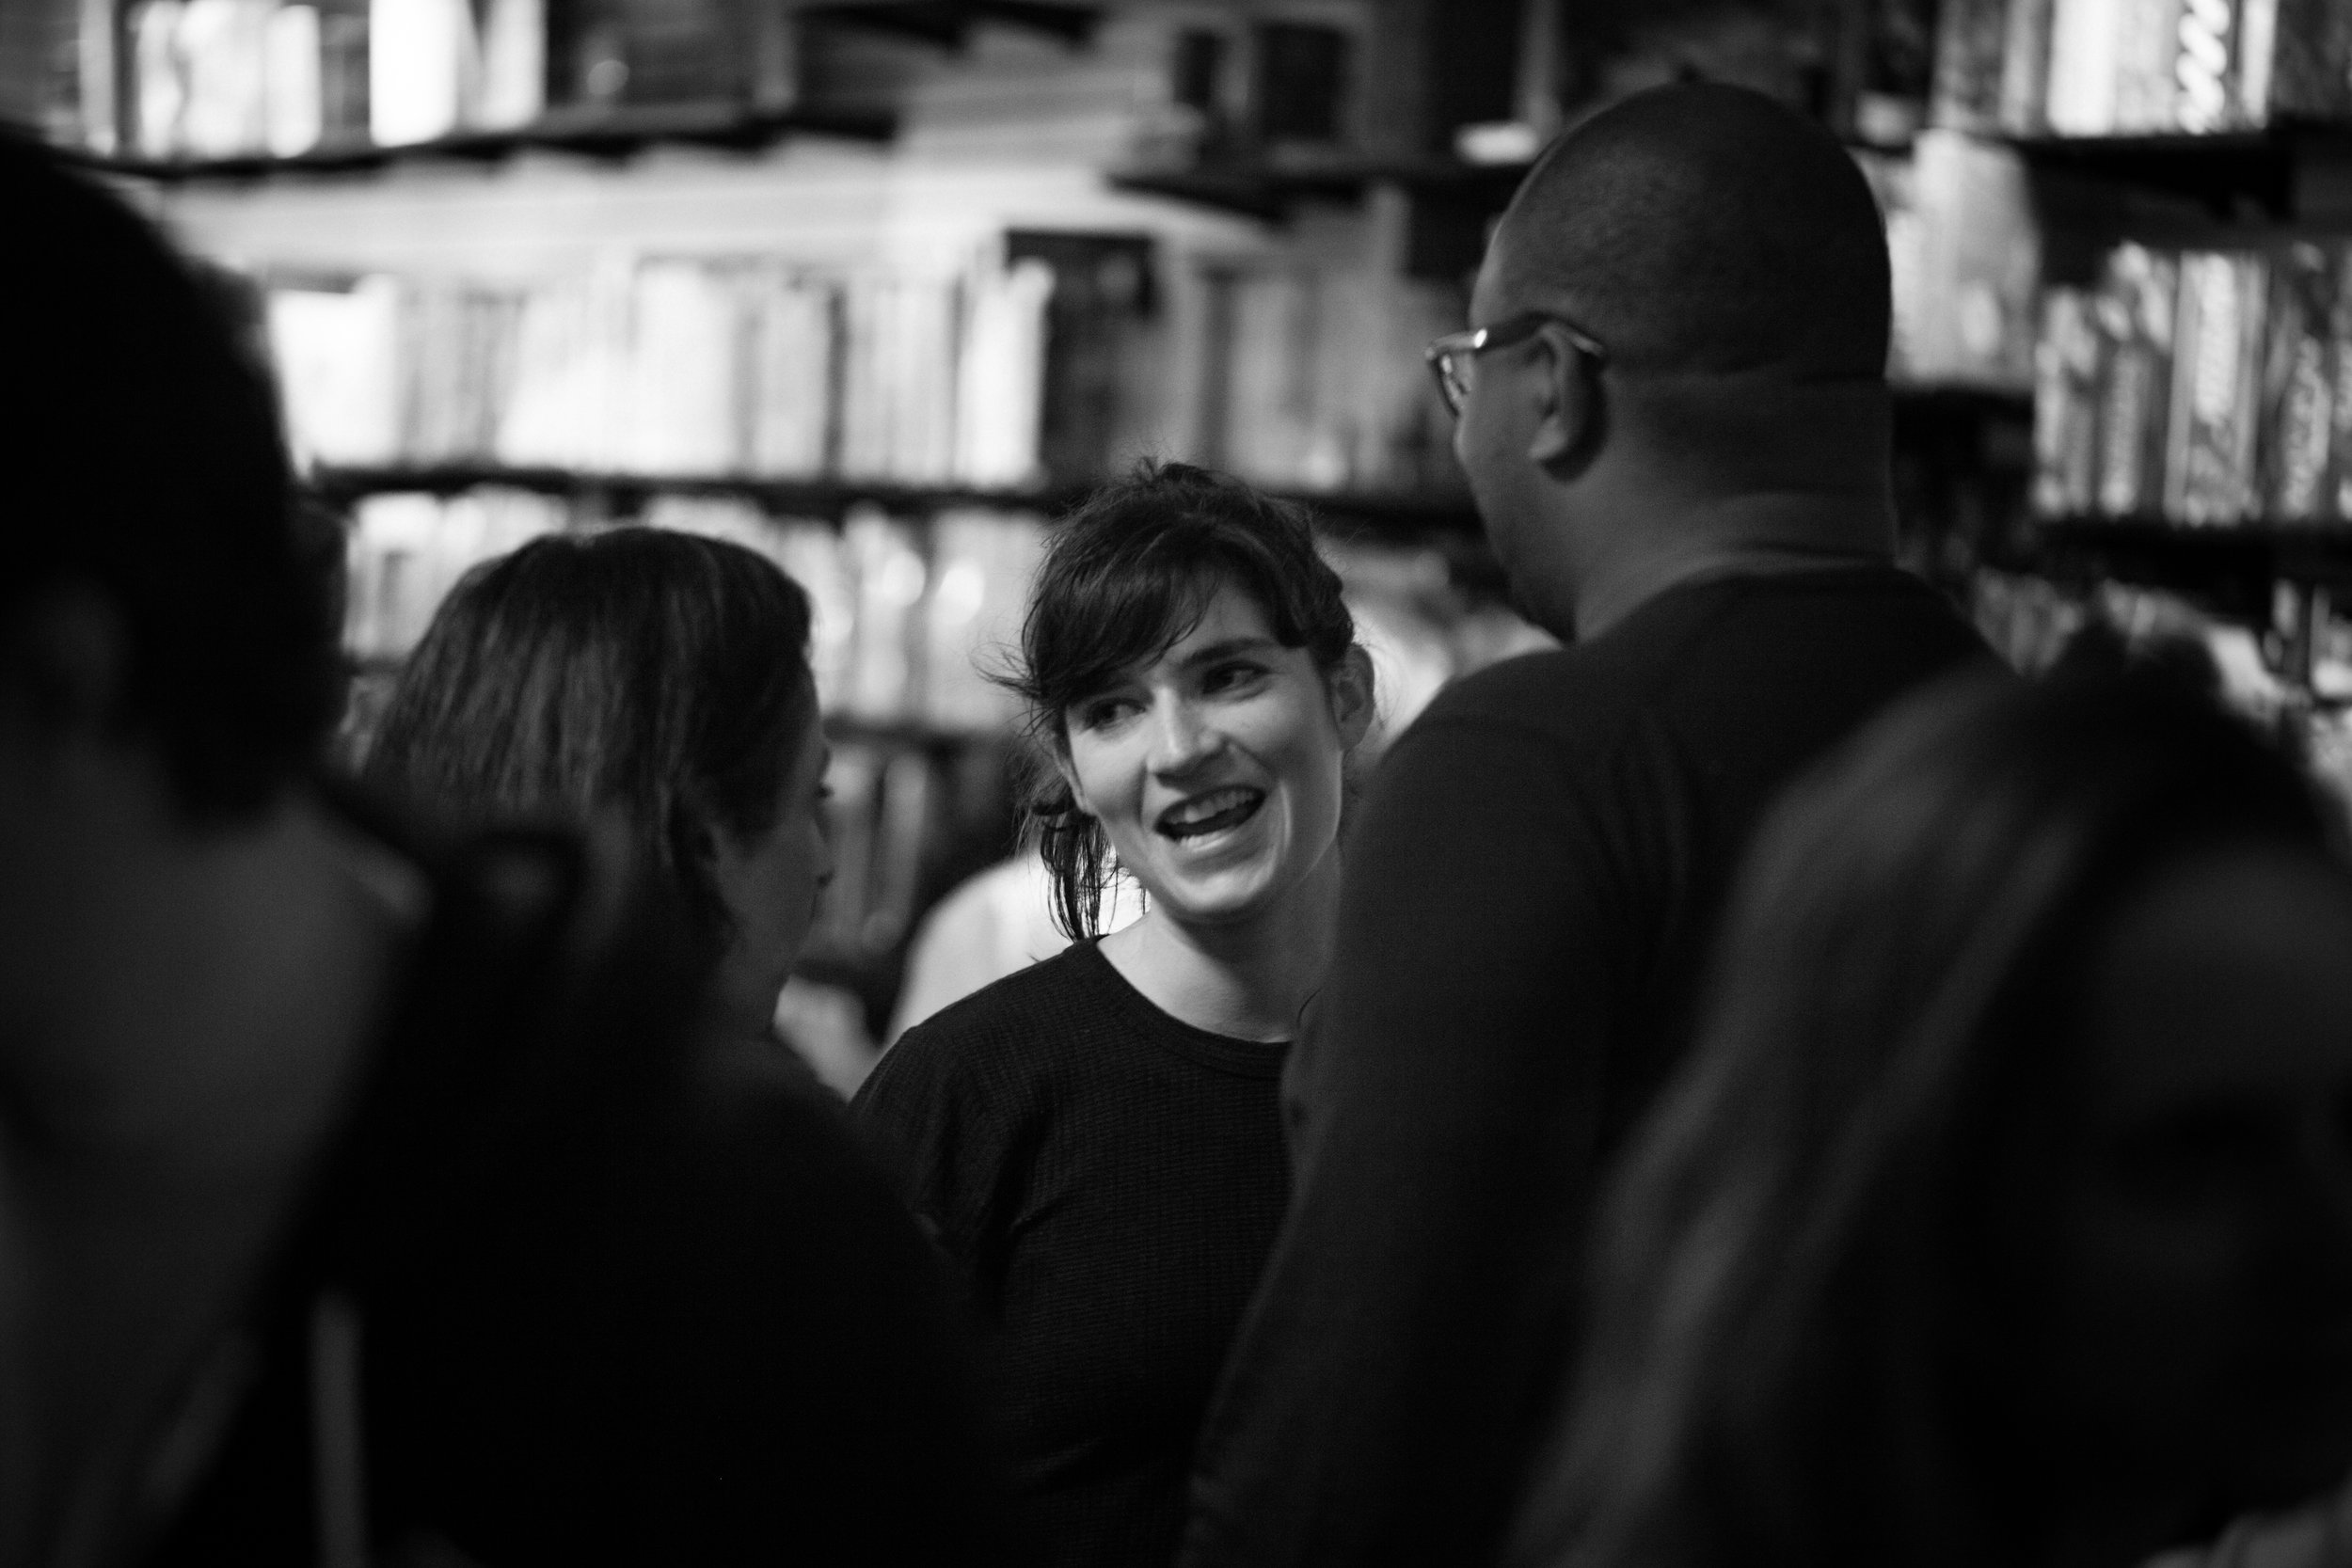 Playwright Liba Vaynberg with audience members after the reading.Photo by Katherine Oostman